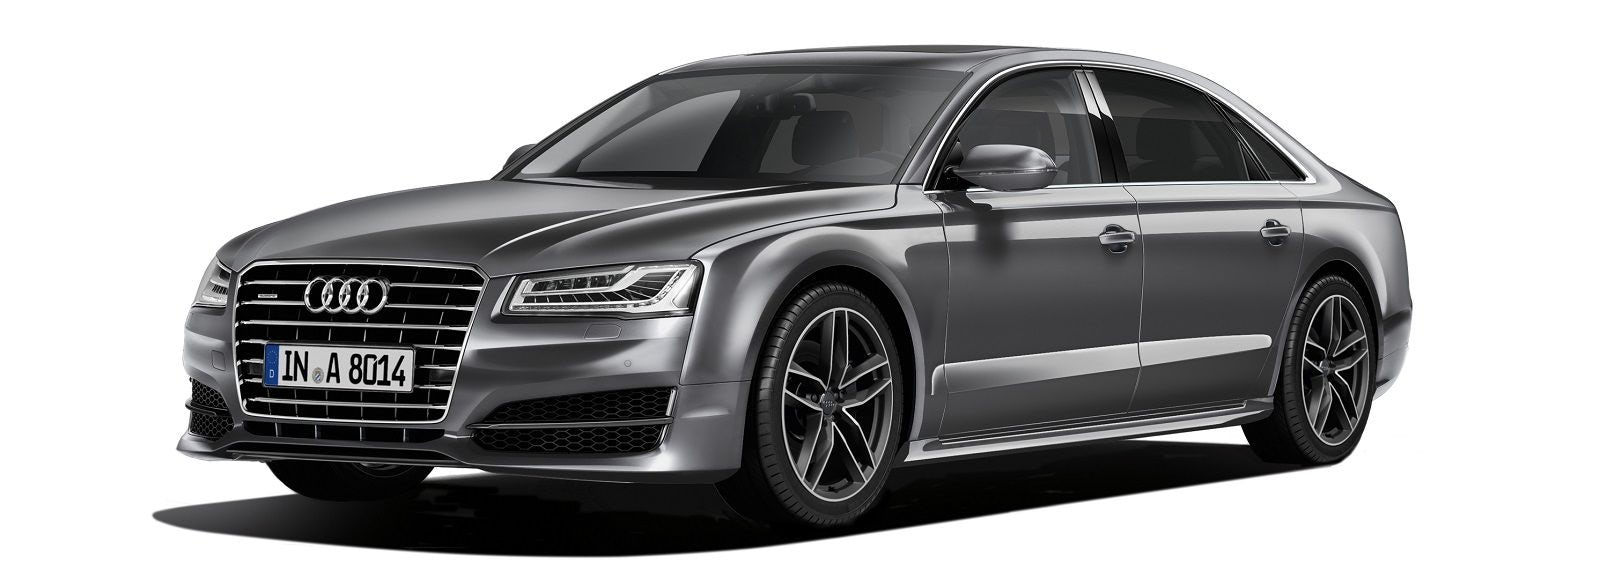 Audi A8 Best Luxury Cars: The Best Luxury Cars On Sale